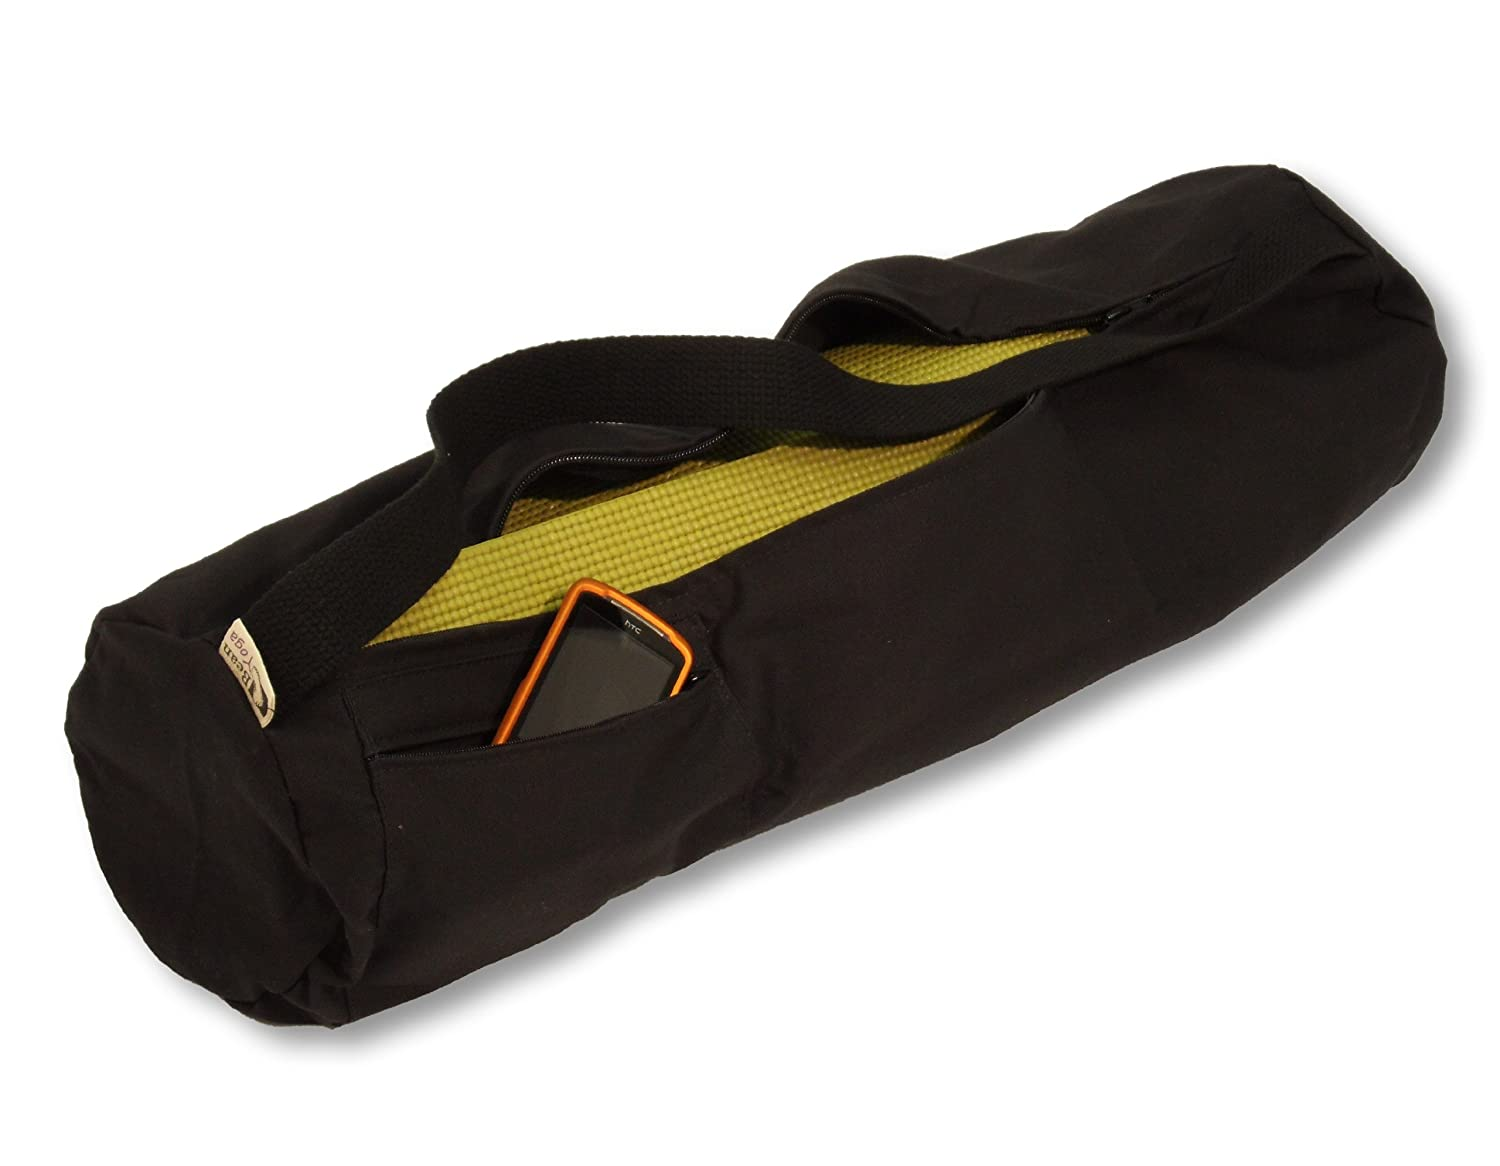 8 Round x 32 Long fits Manduka + Jade Extra Large - - Made in USA Easy Open Zipper Black Cotton Mat Bag